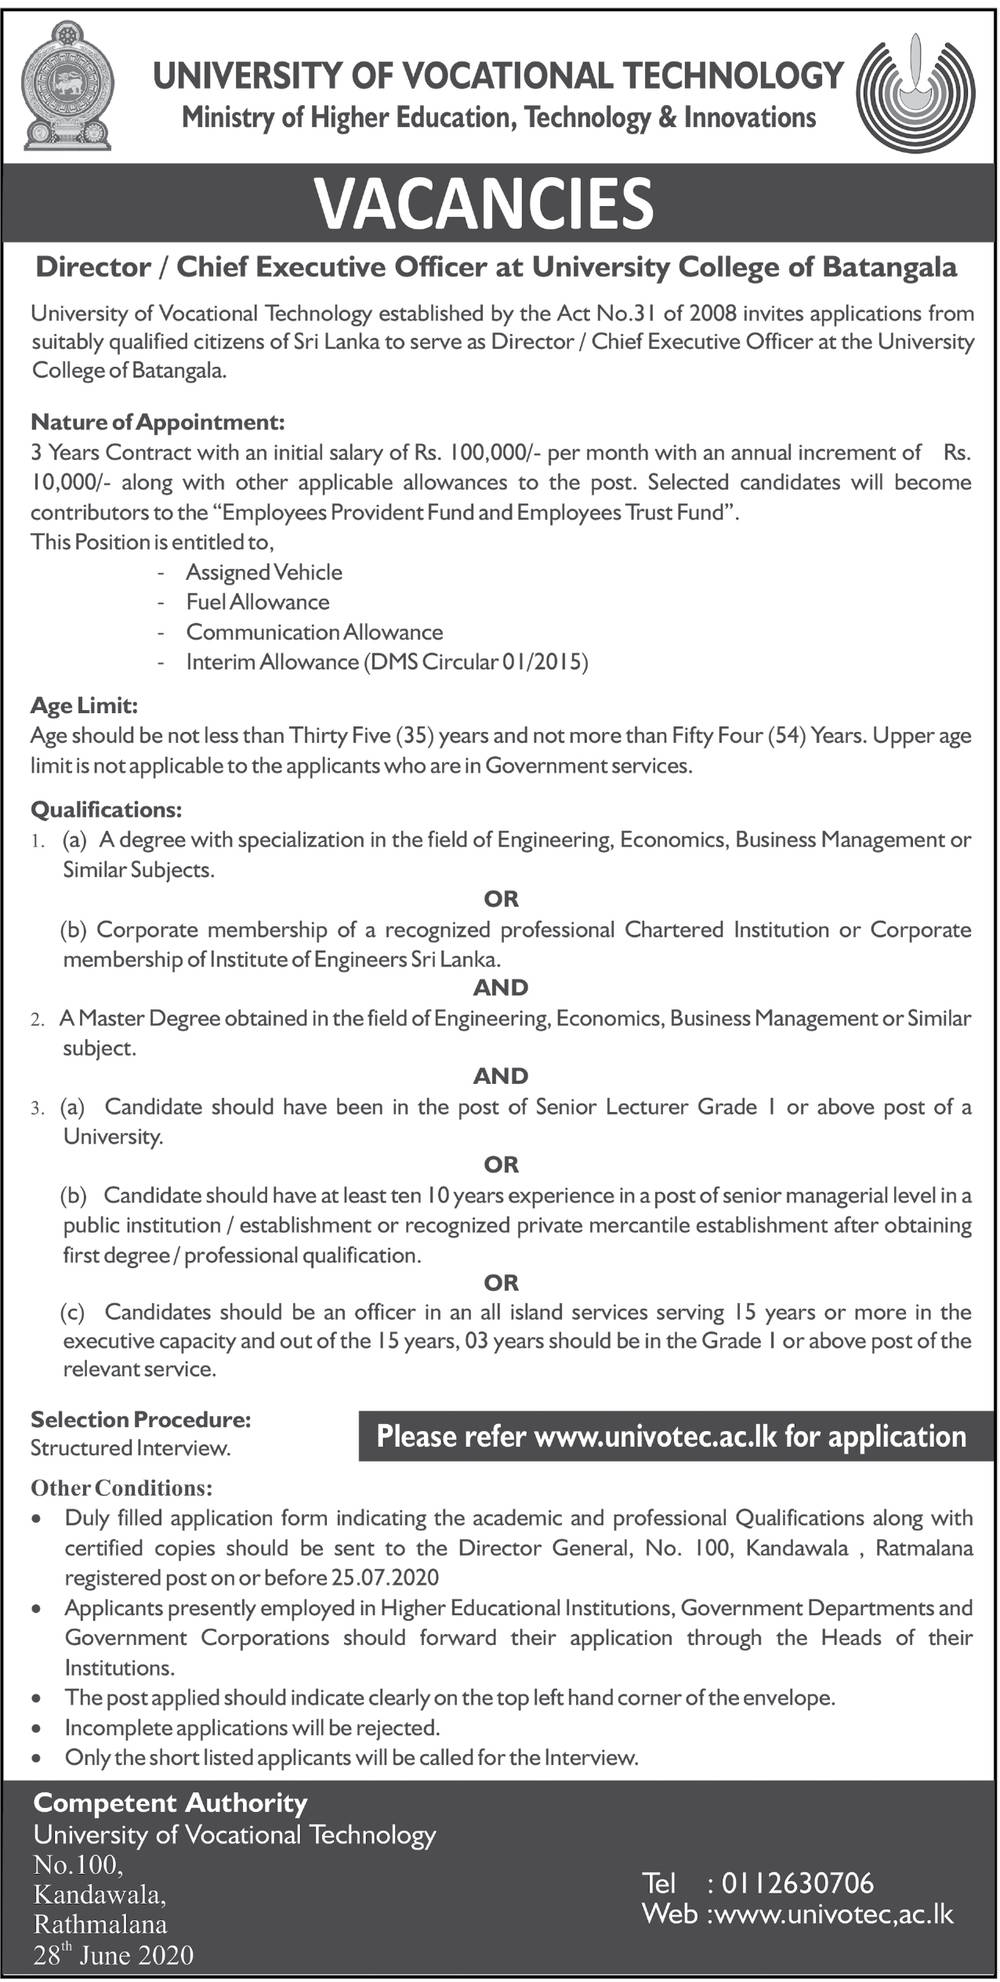 Director/Chief Executive Officer - University College of Batangala